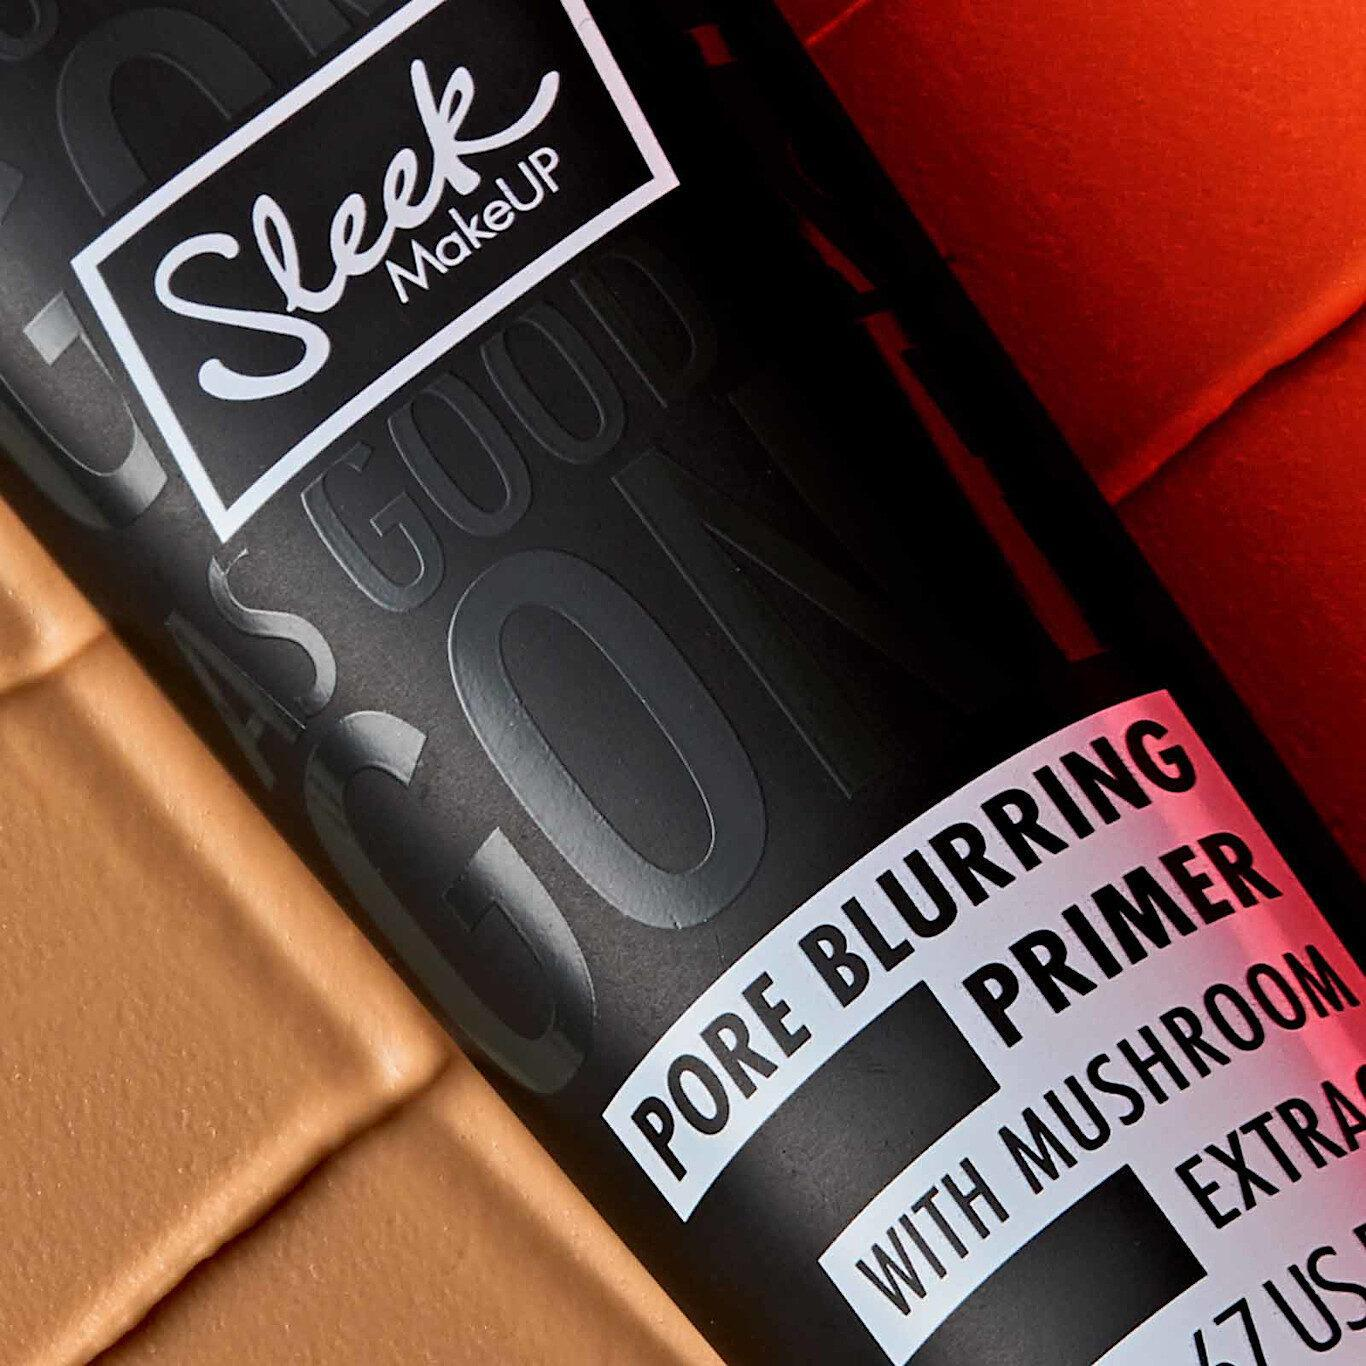 Sleek Makeup Lucid Dreams Collection Pore Blurring Primer Closer Promo